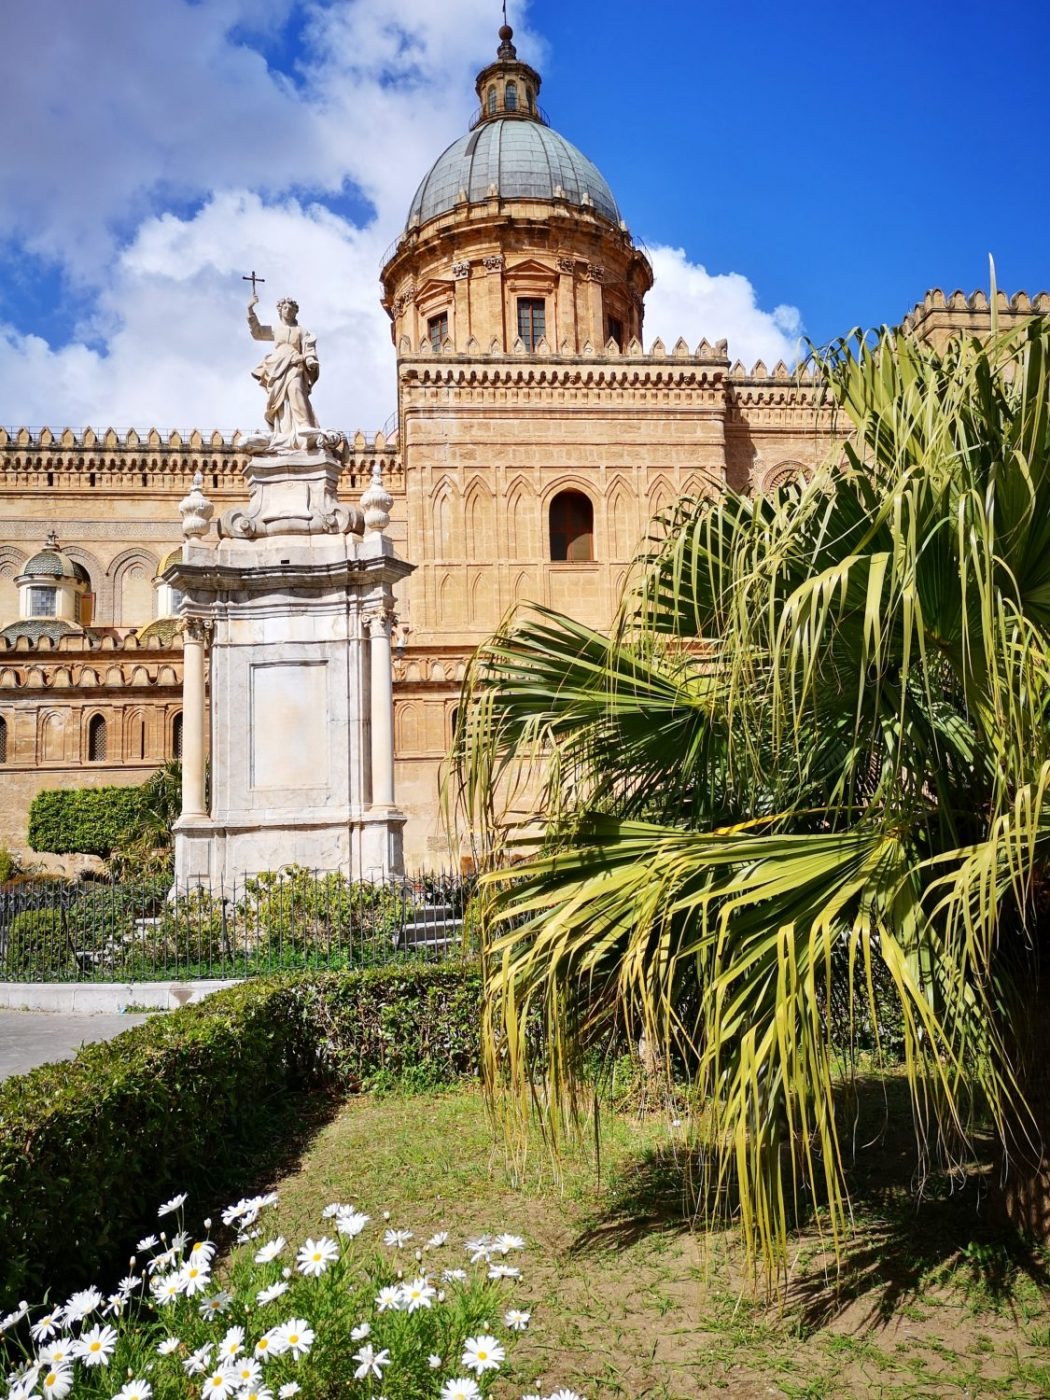 Where to Stay in Palermo Sicily: Kalamonjo Suite&Rooms